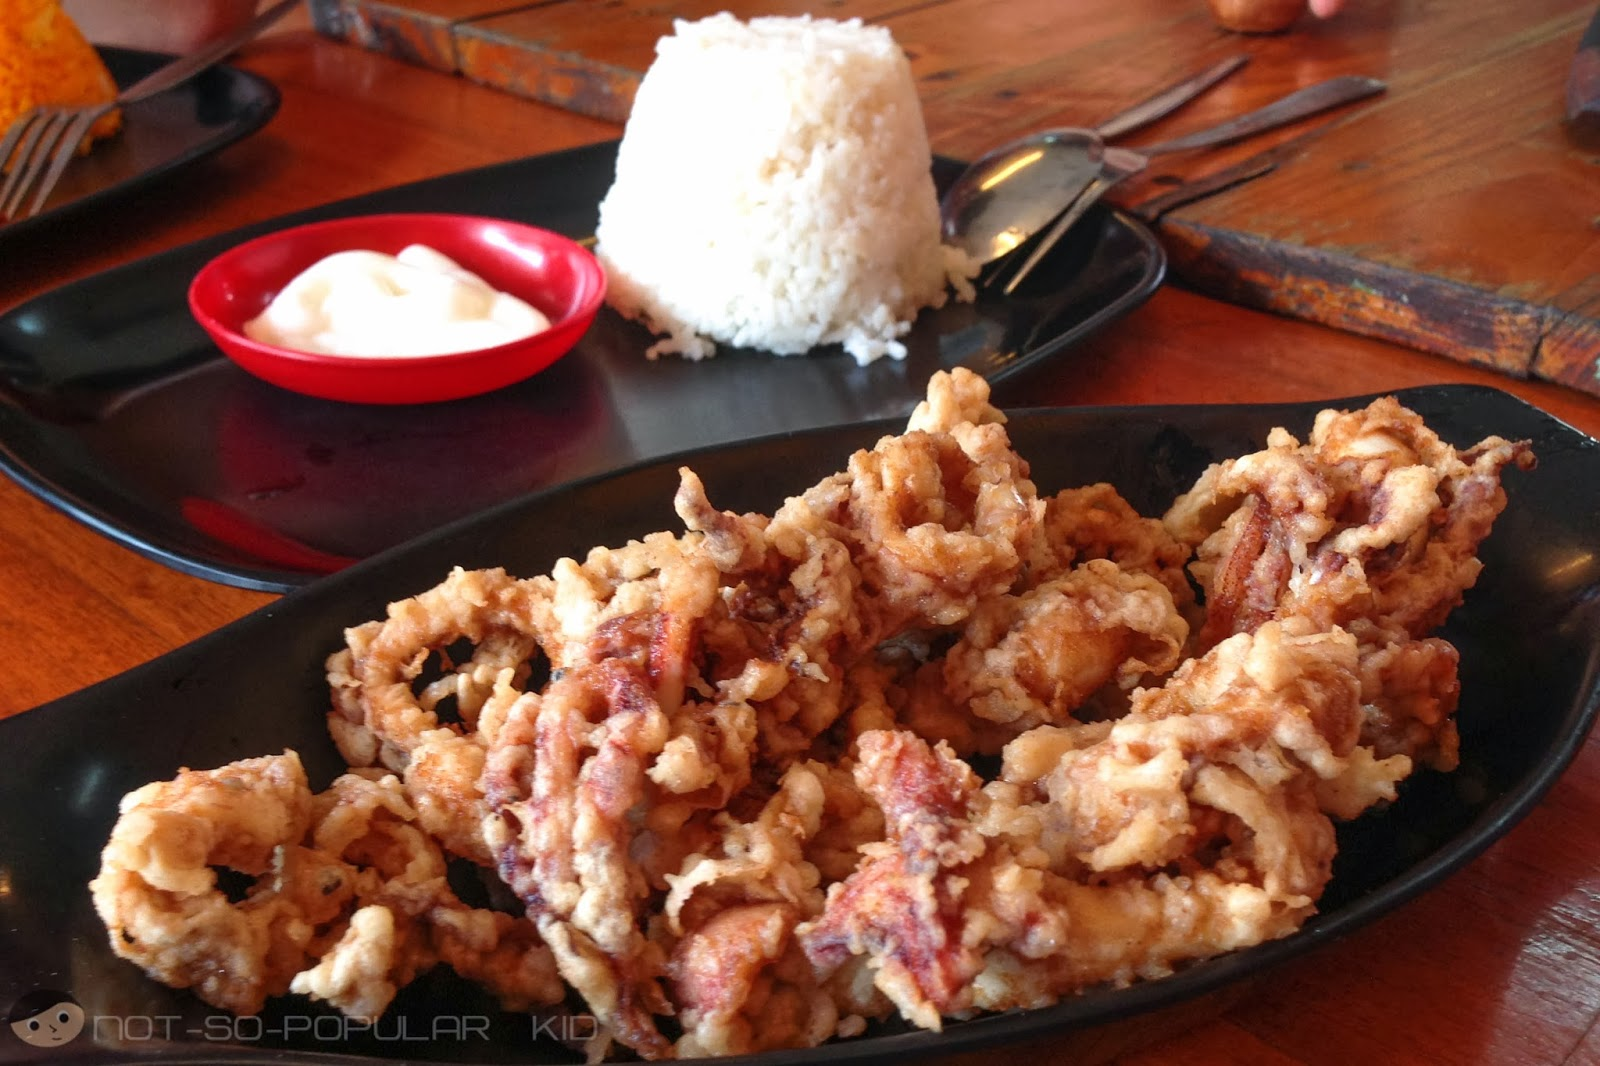 A hefty serving of calamares in Toto's Eatery